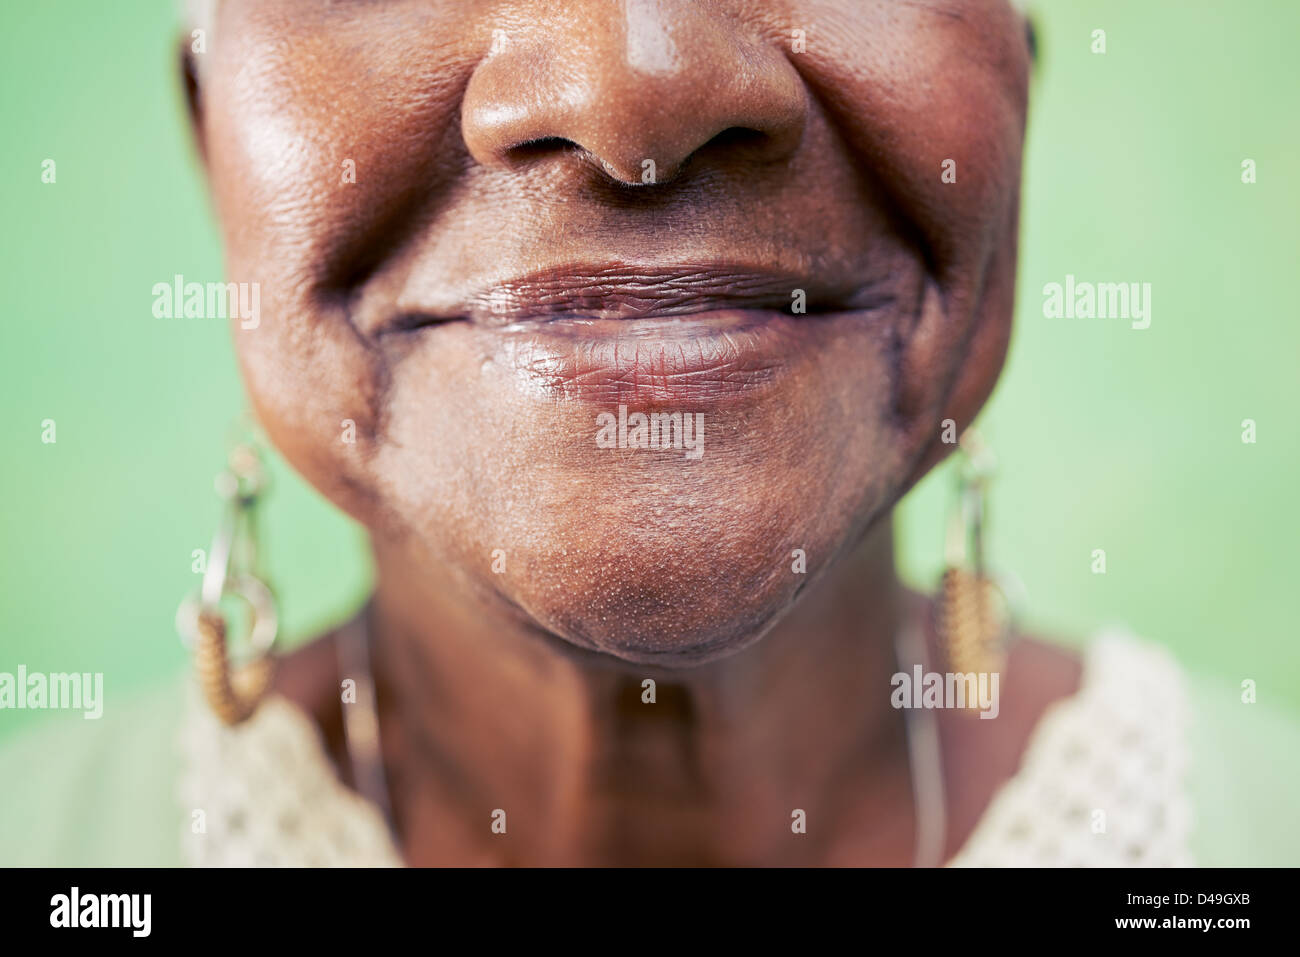 Old black woman portrait, close-up of eye and face on green background. Copy space Stock Photo